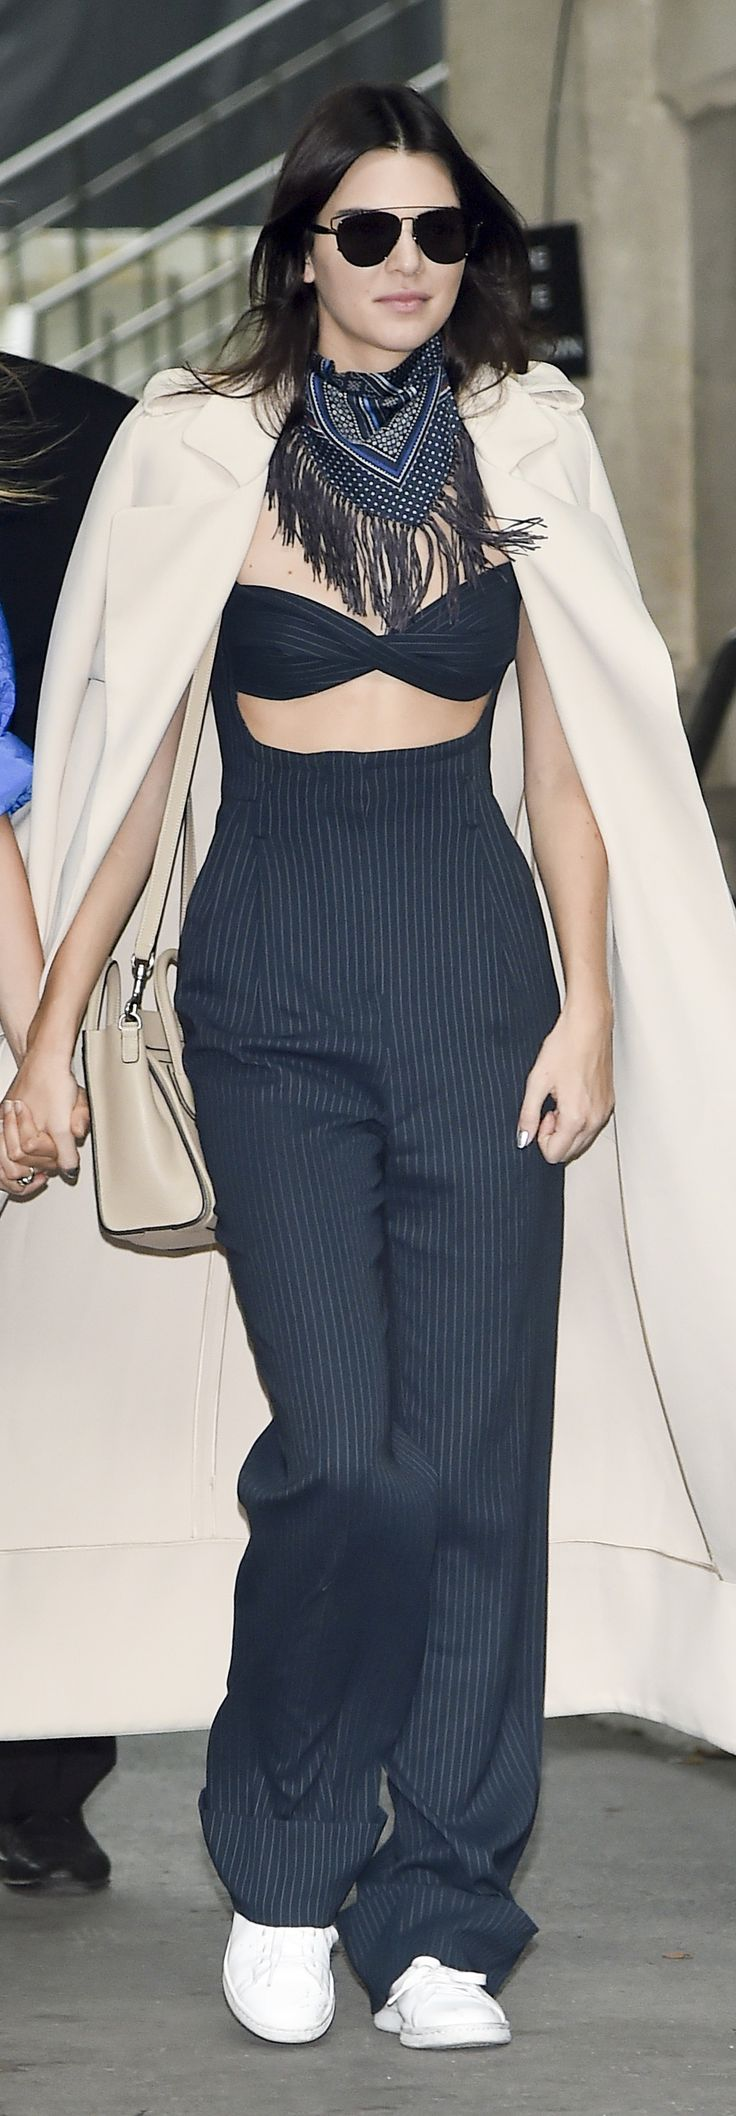 Wait Until You See What Kendall Changed Into After the Chanel Show